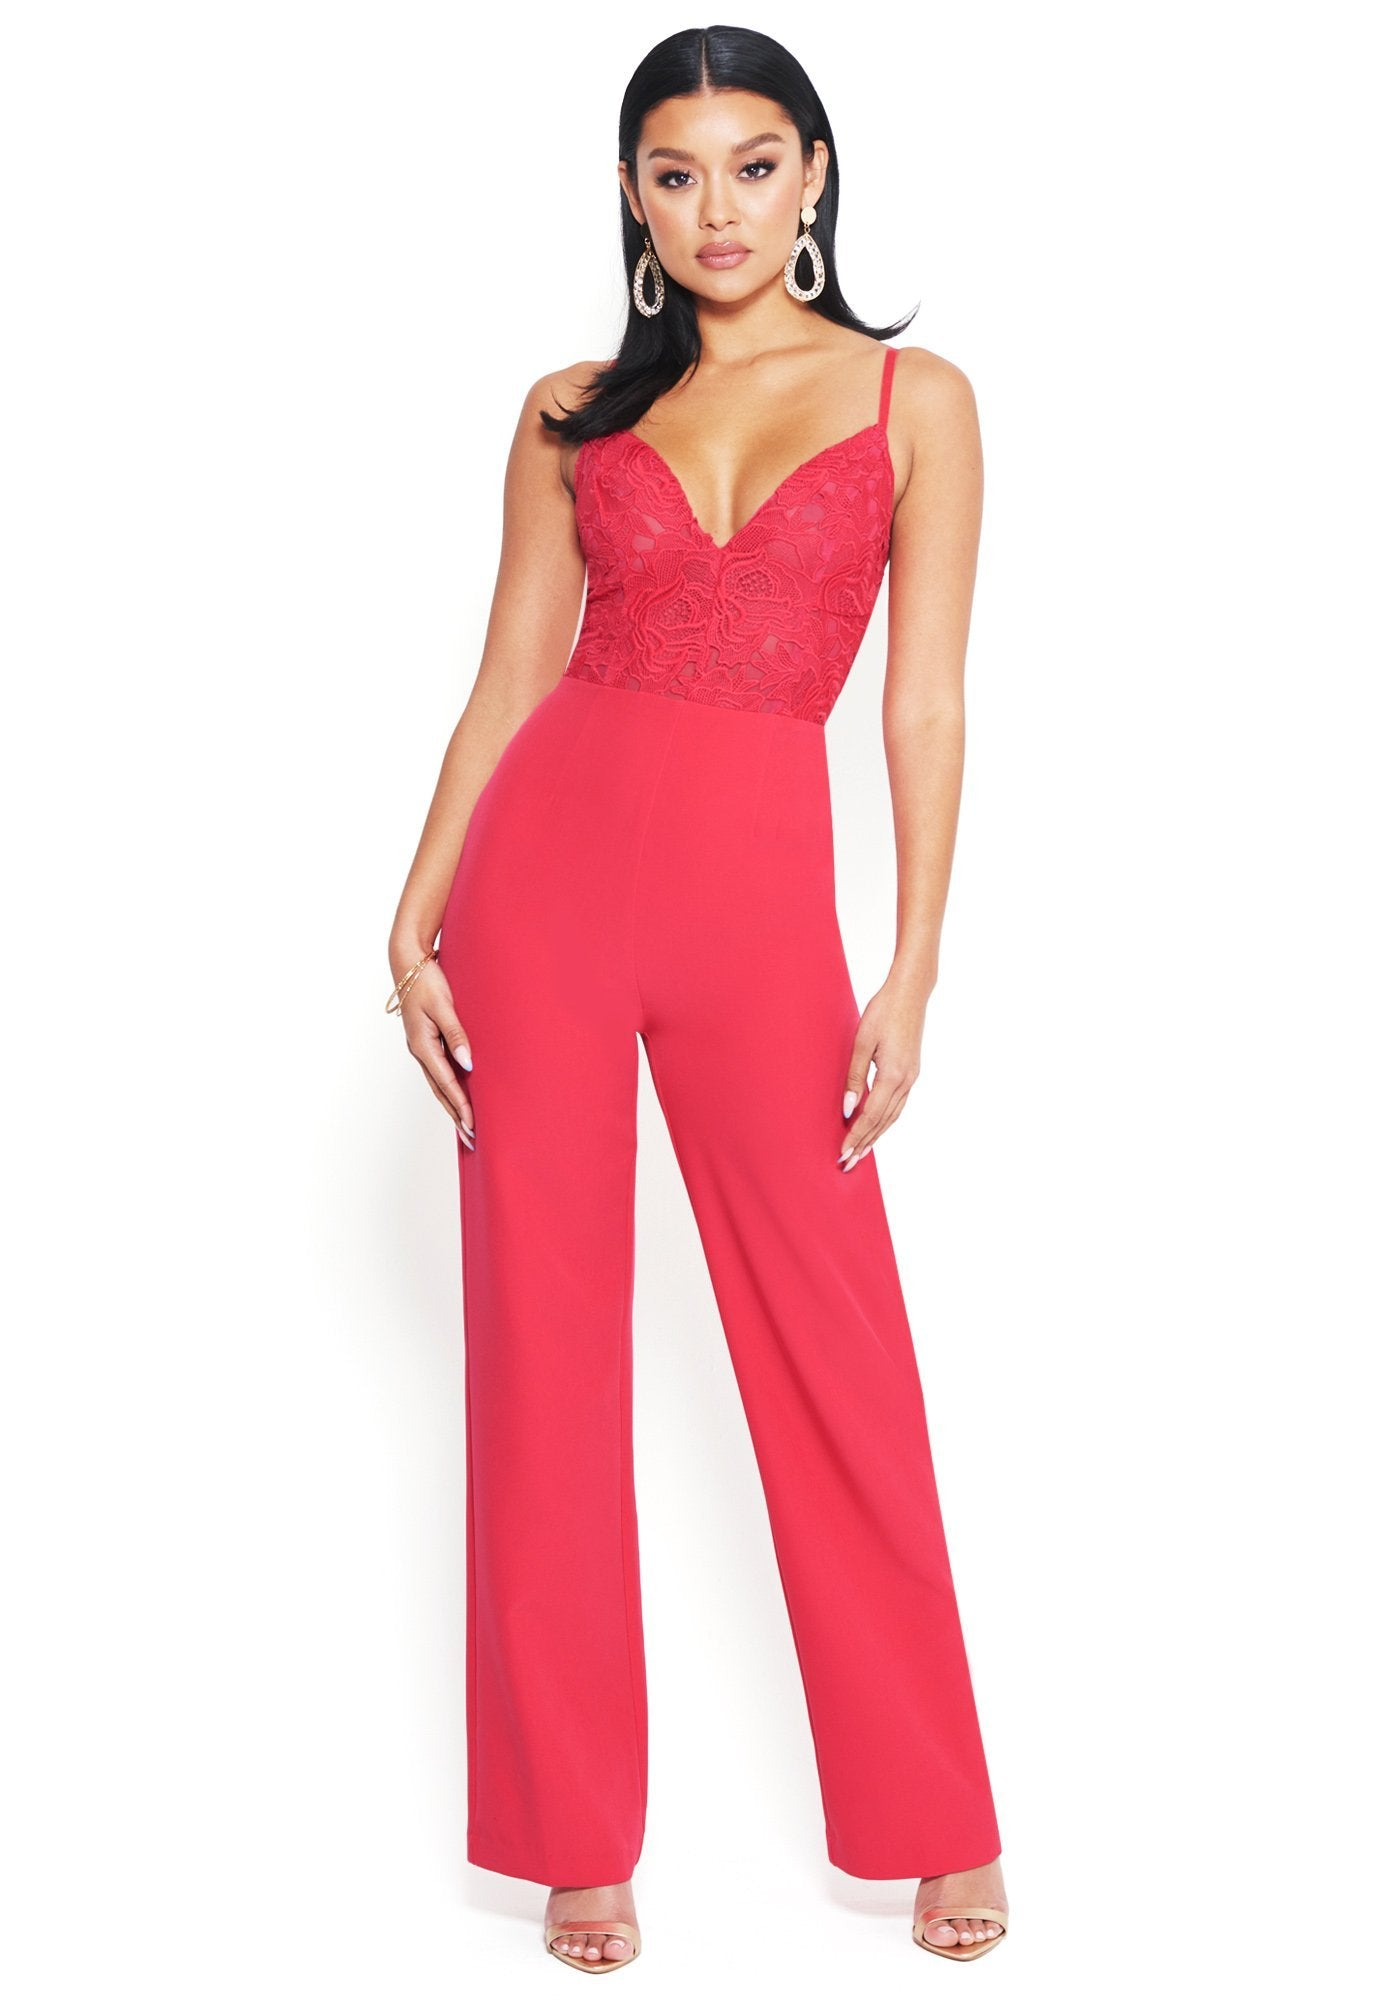 Bebe Women's Embroidered Lace Jumpsuit, Size 00 in Love Potion